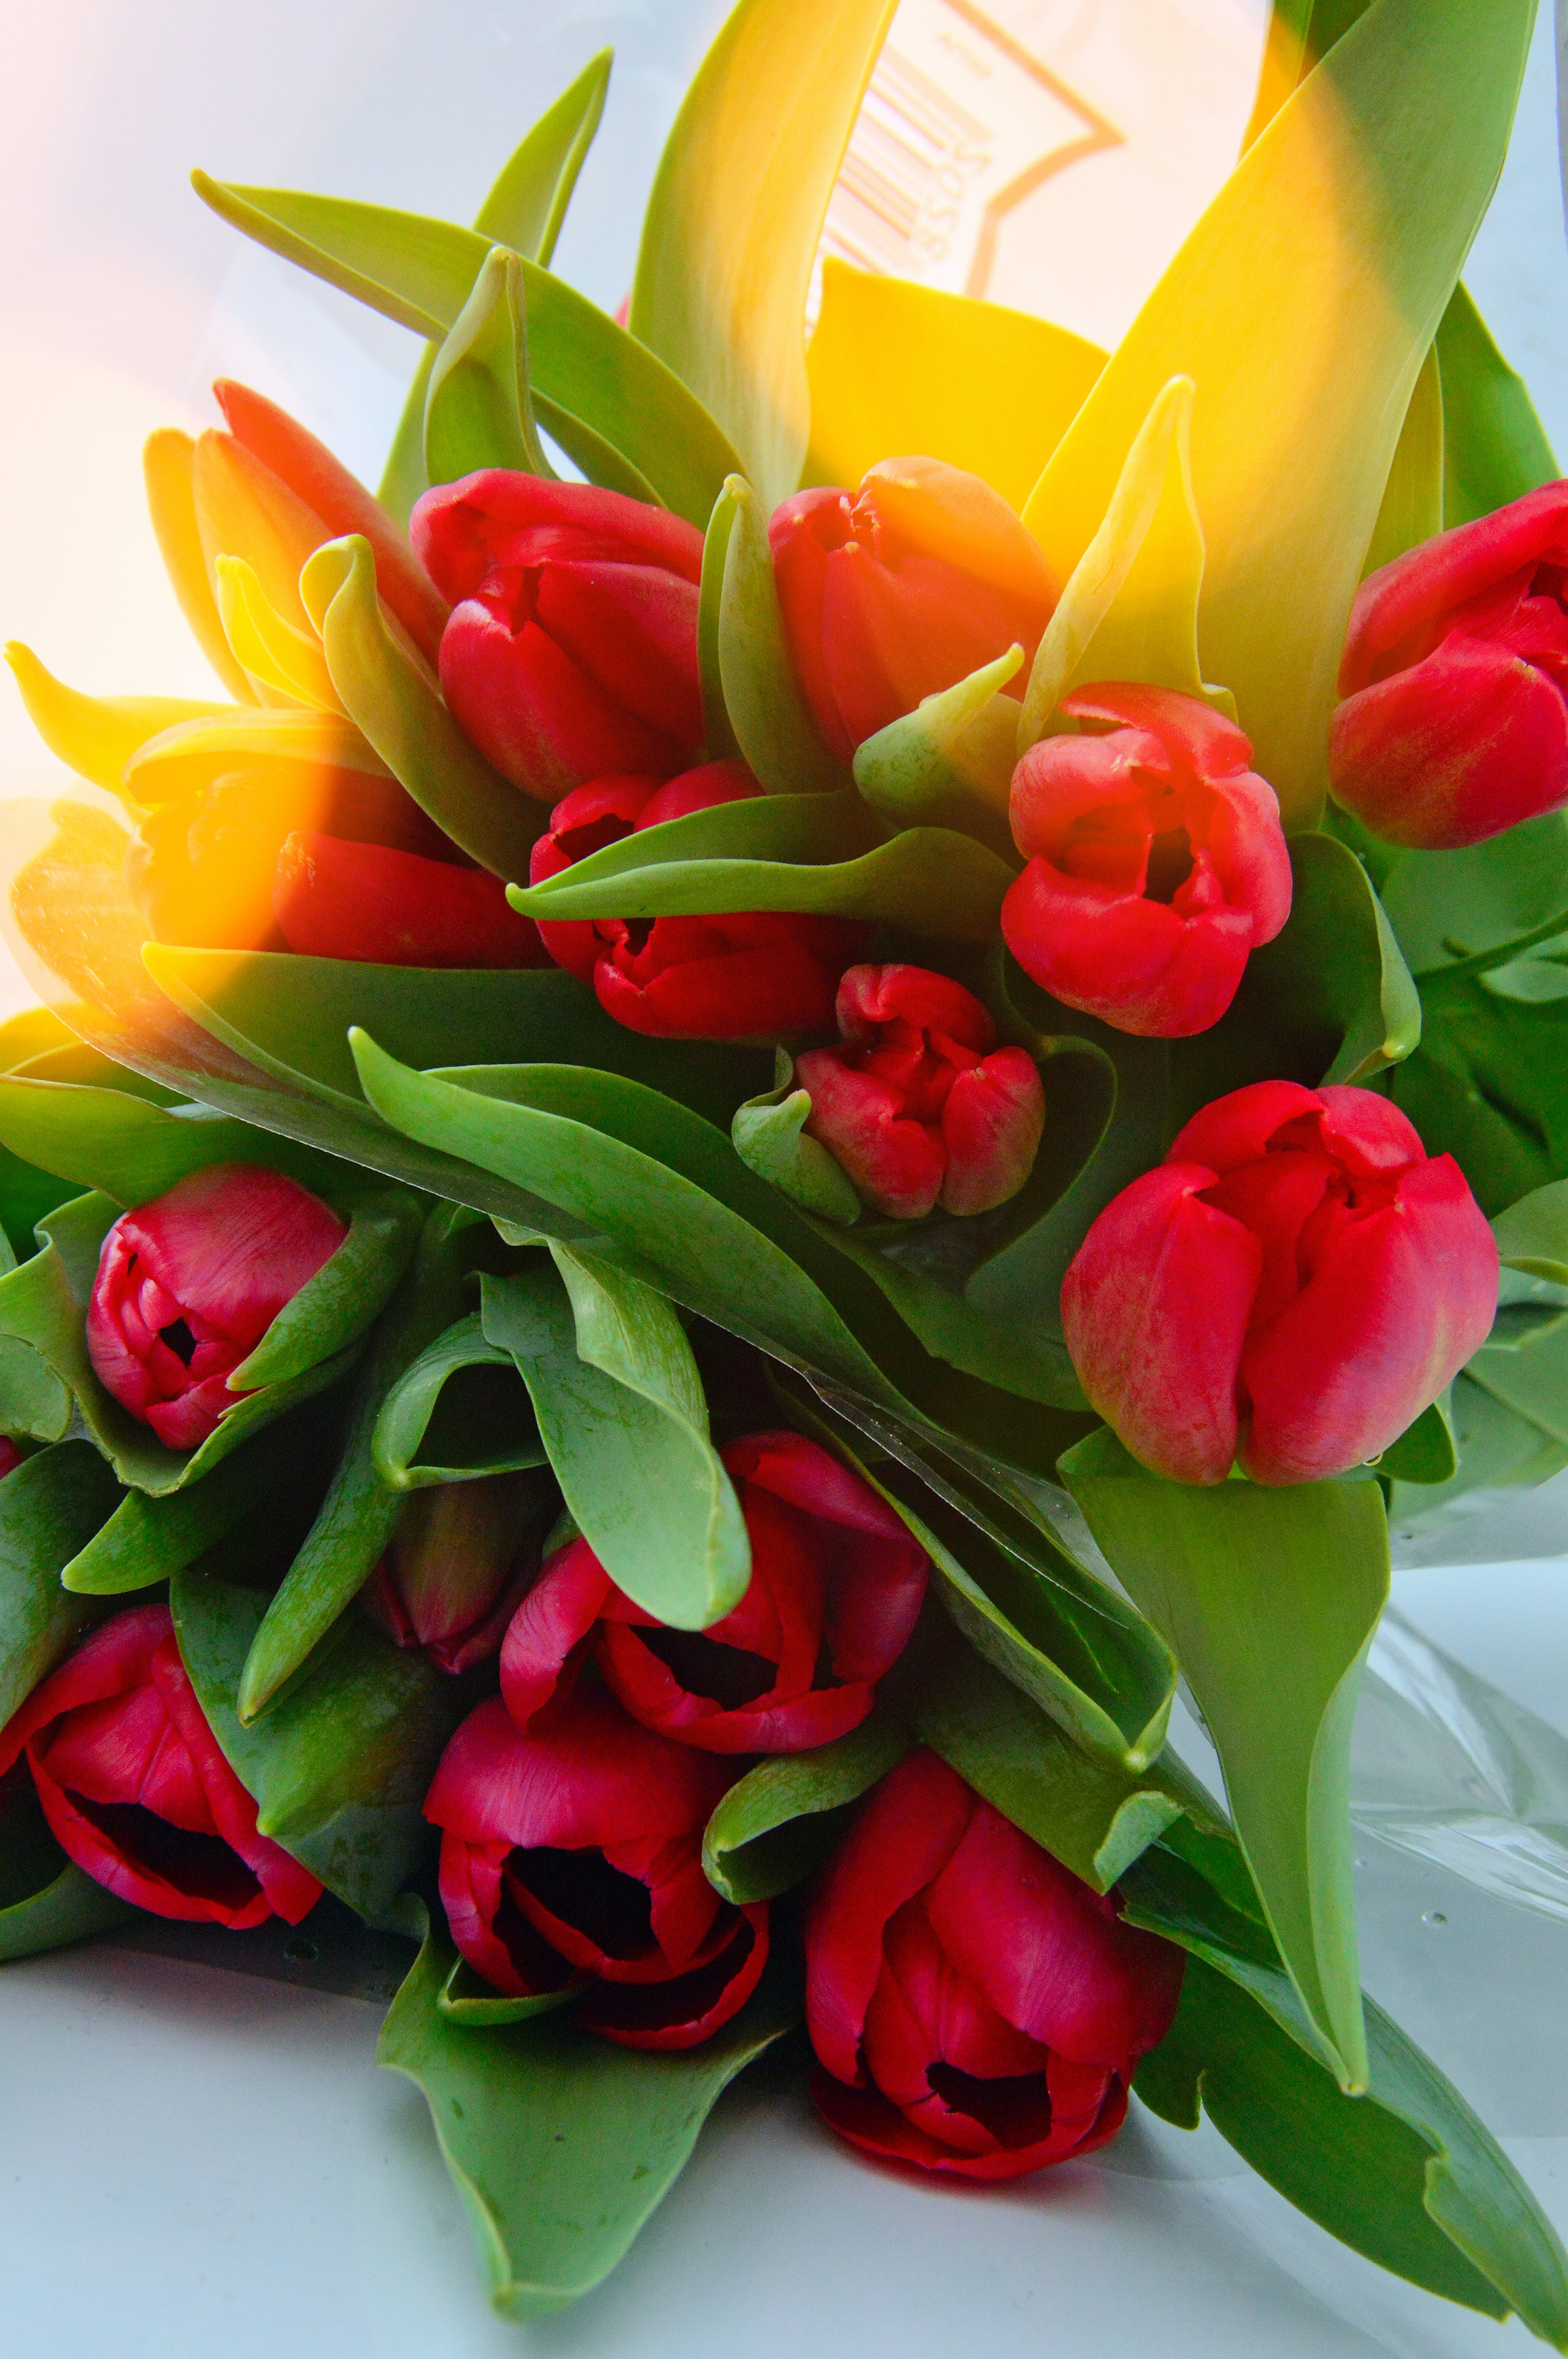 of bouquet of fresh spring red tulips